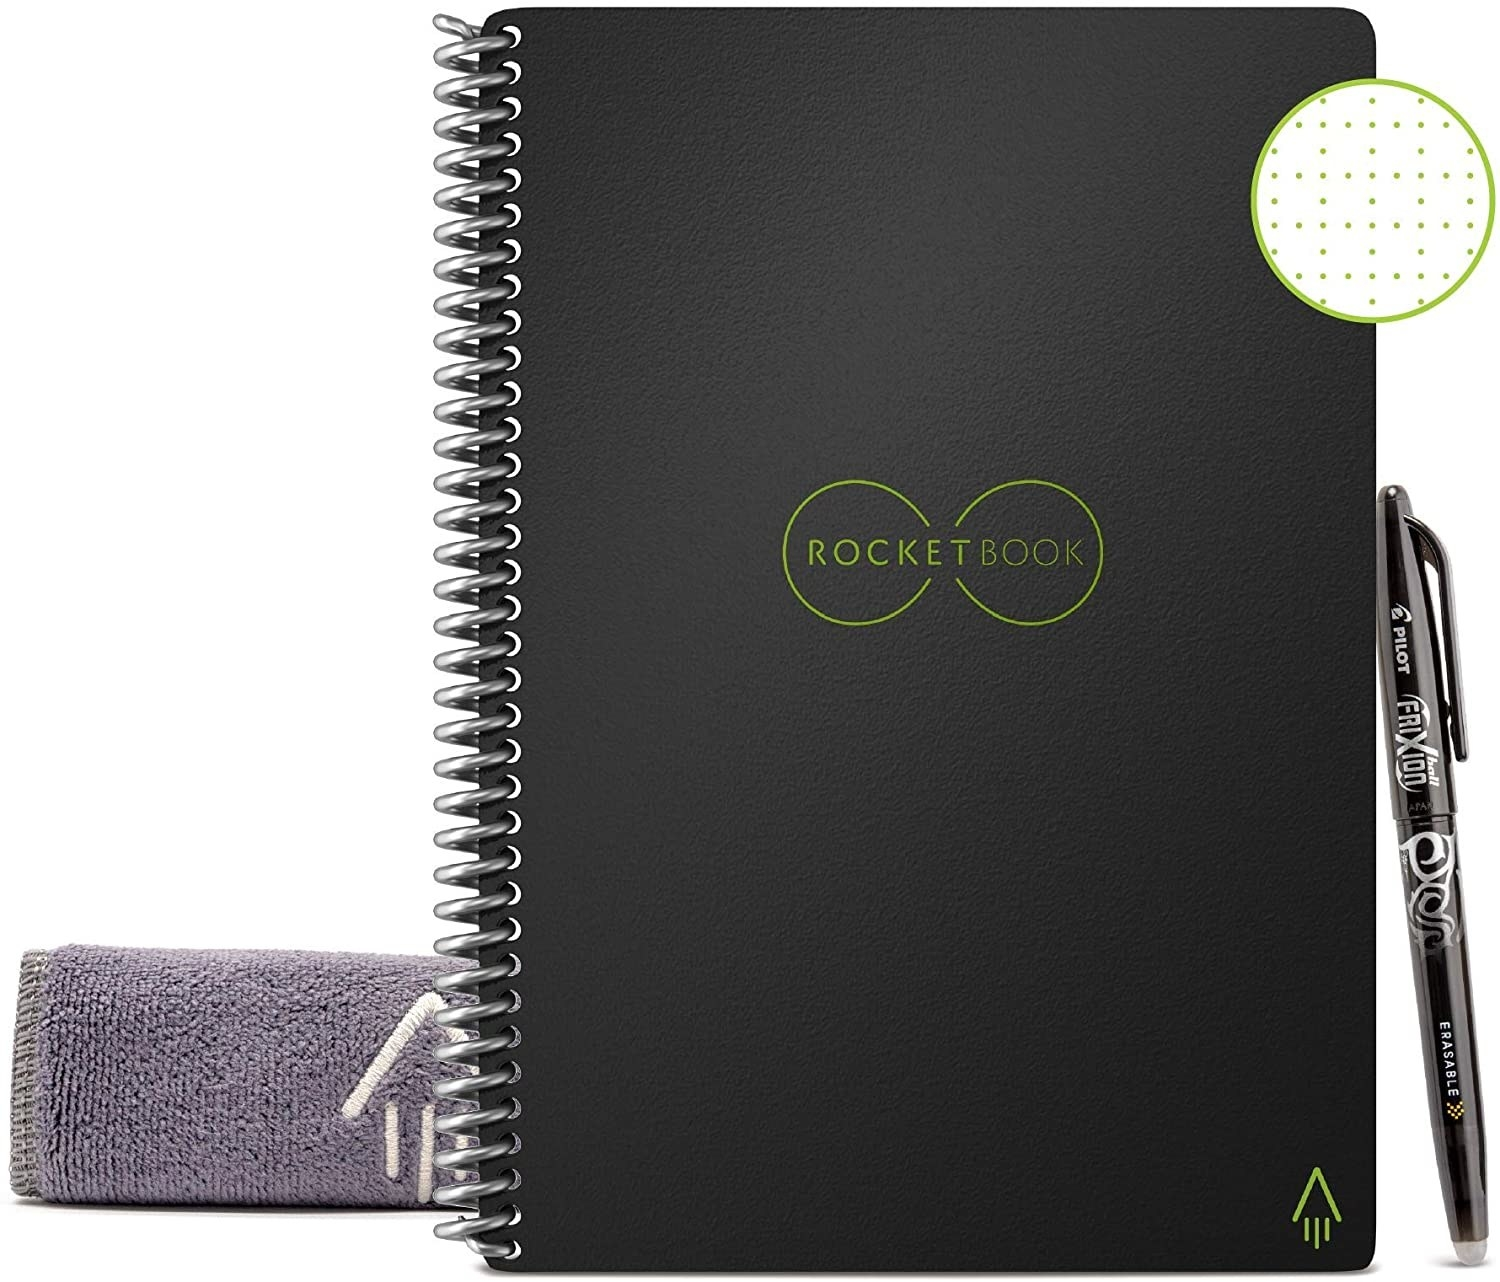 The black spiral notebook with a pen and microfiber cloth